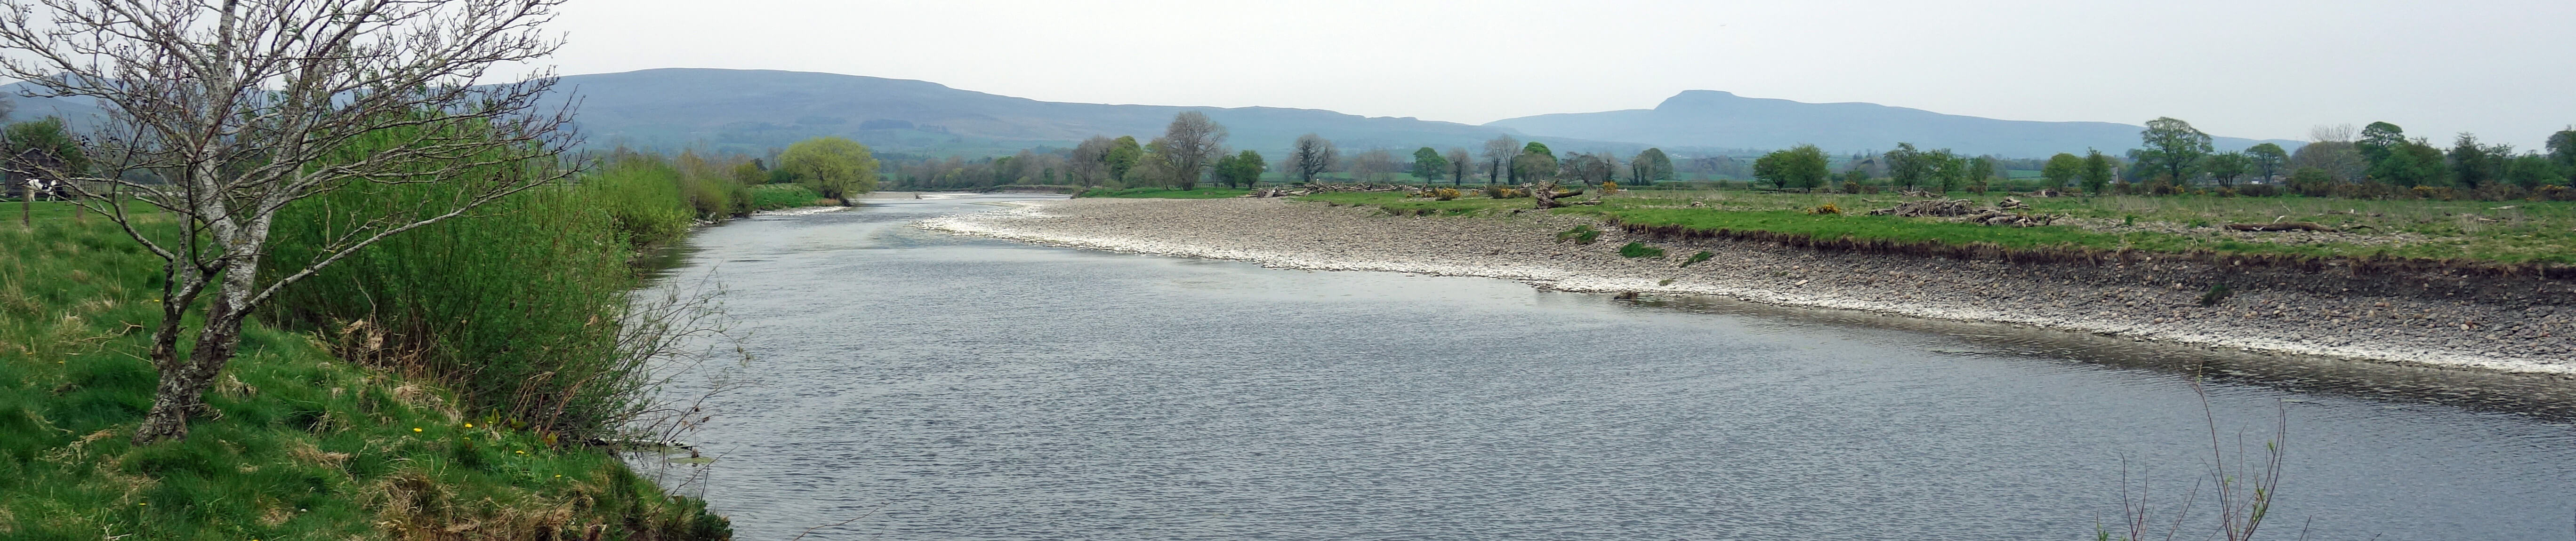 Ingleborough from Lune